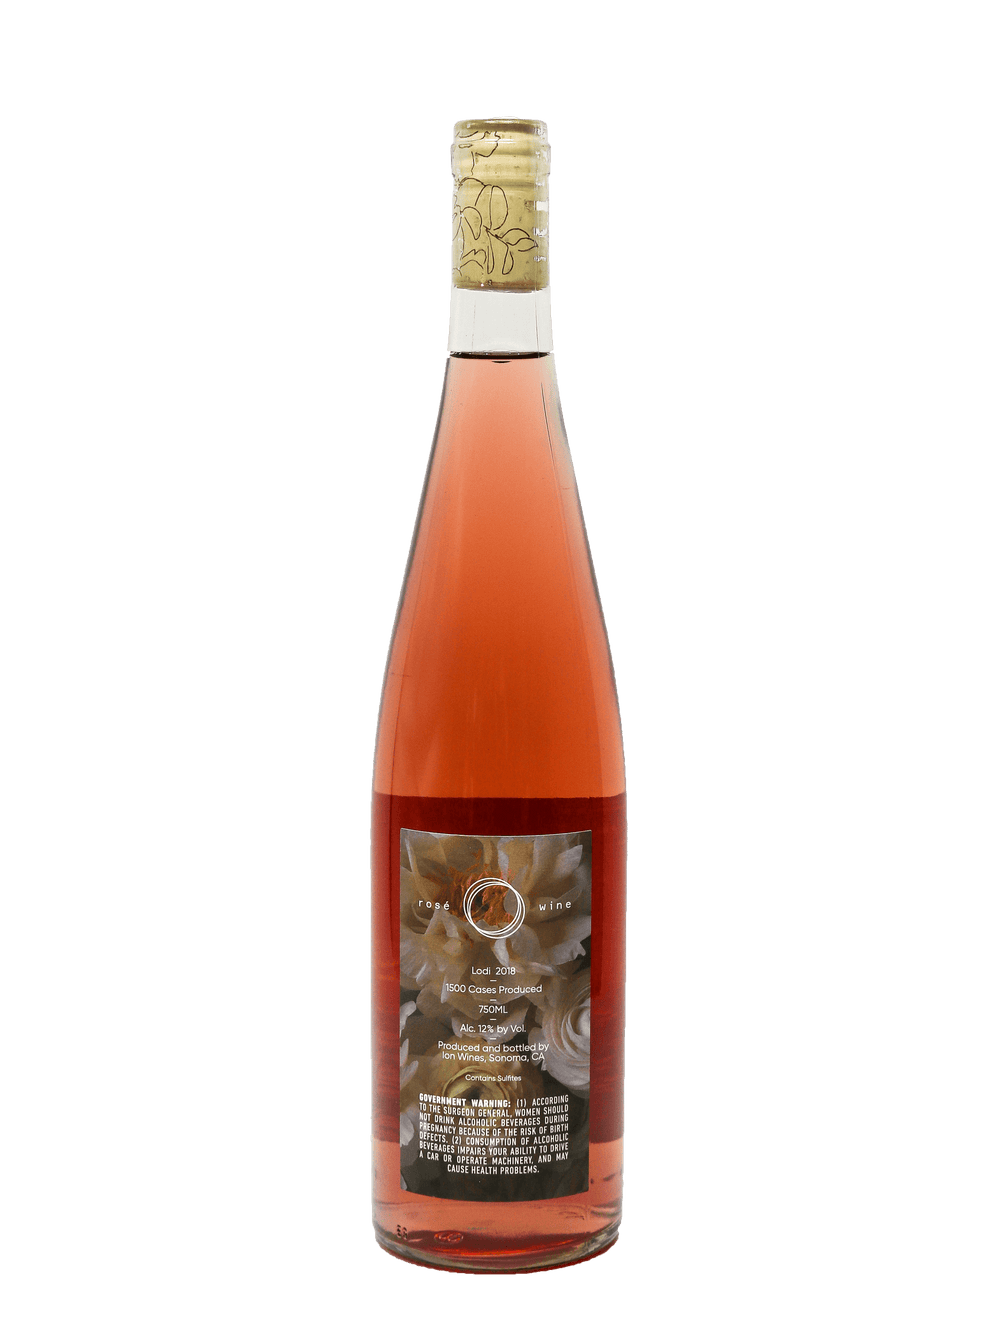 California Rose Wine under $20 Best Buy